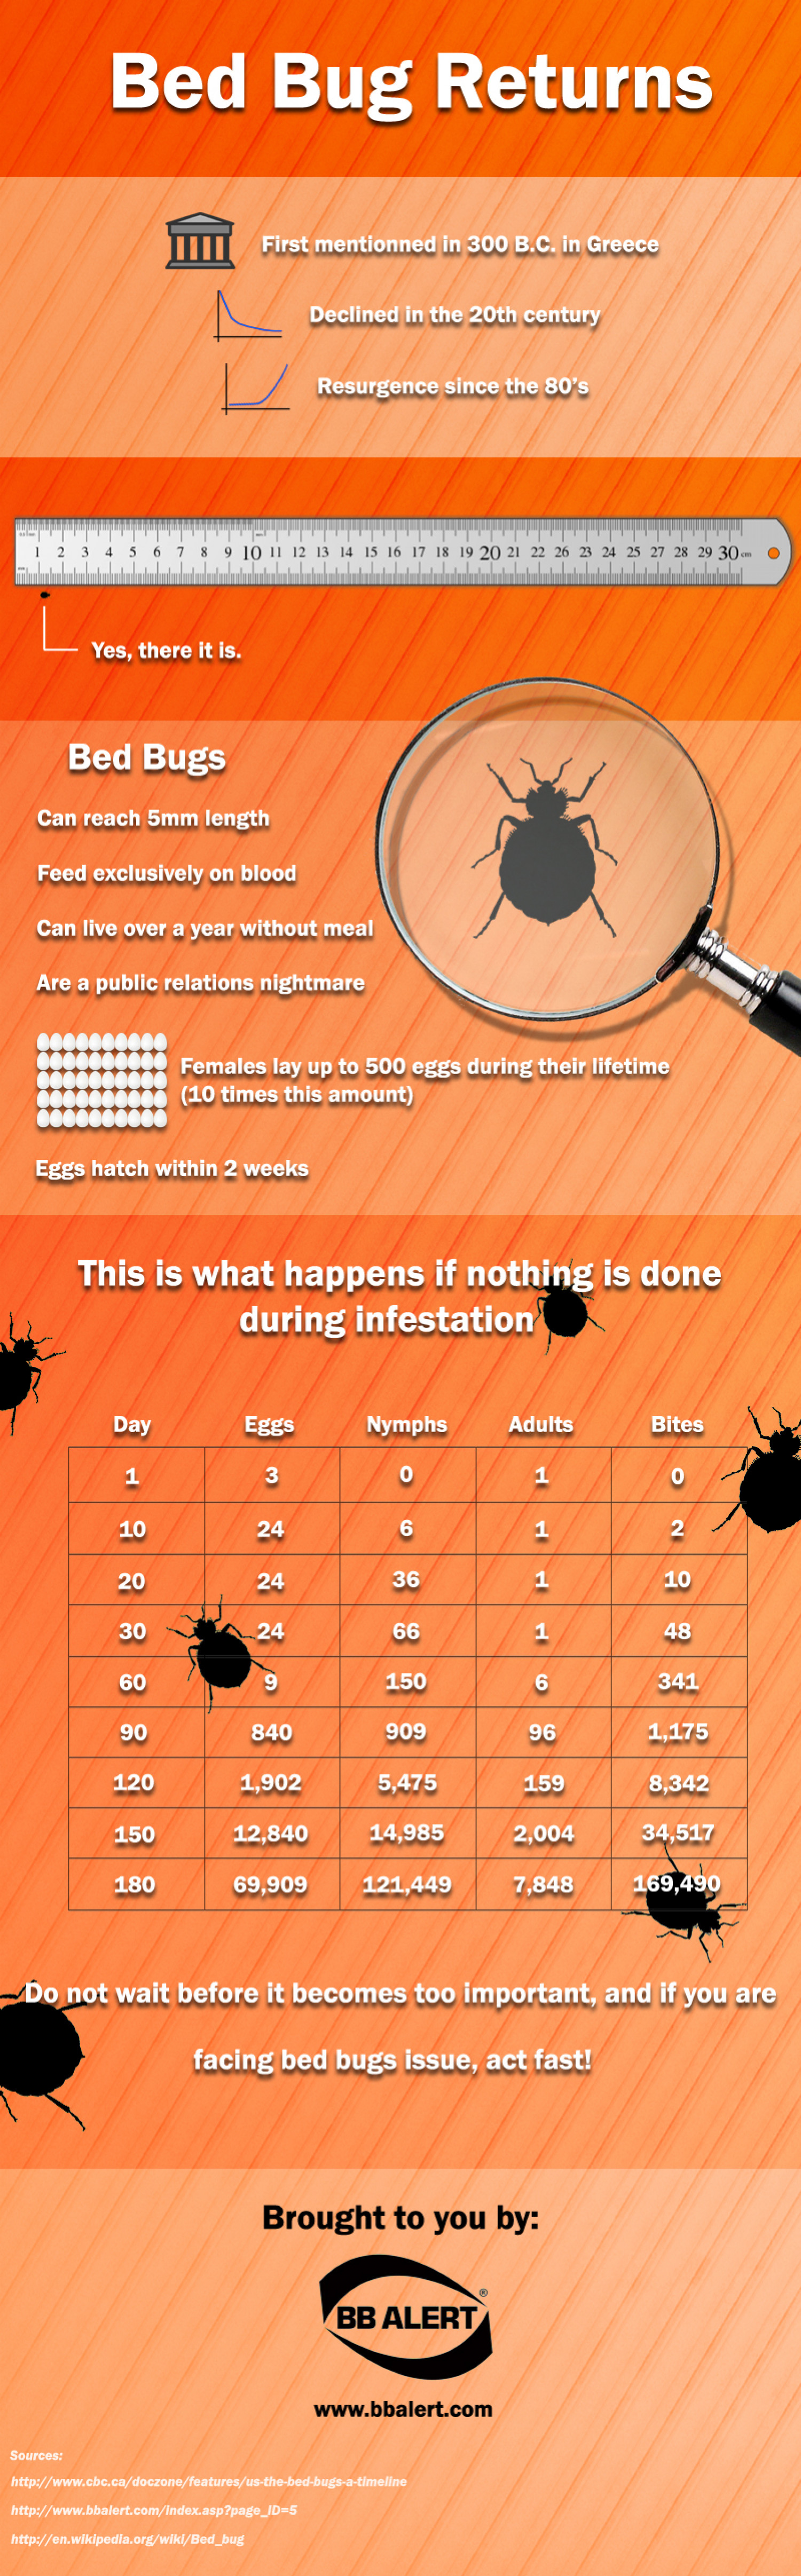 Bed Bug Returns Infographic